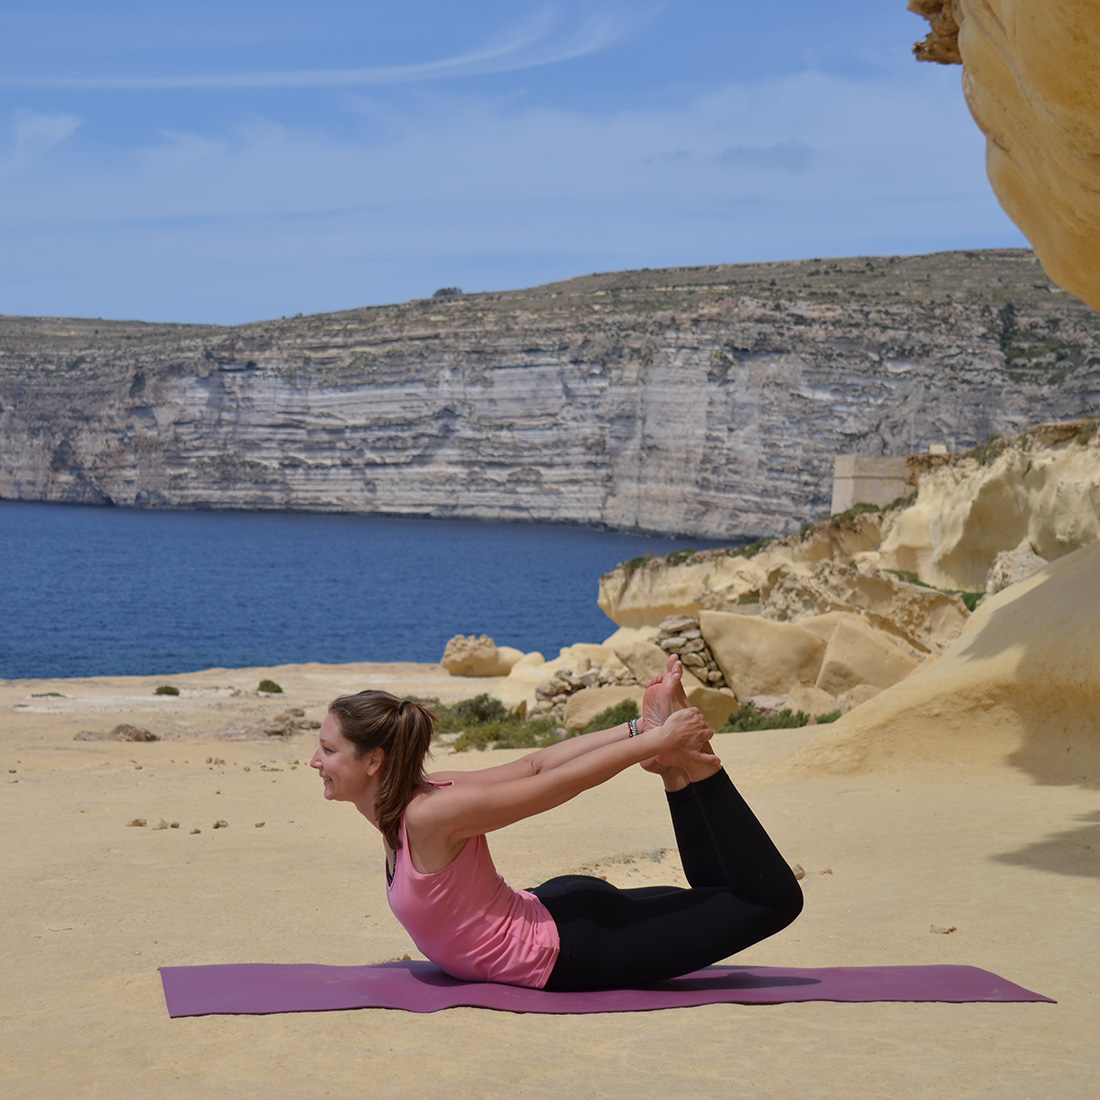 gozo xlendi yoga cliffs sea sun summer views joy morning sunset mindful stretch relax nidra indoor Victoria private group classes pranayama breathing meditation island fresh air move body Dwejra Qbajjar tower Xwejni salt pans Ramla beach breathtaking hidden spots heart mind mat love